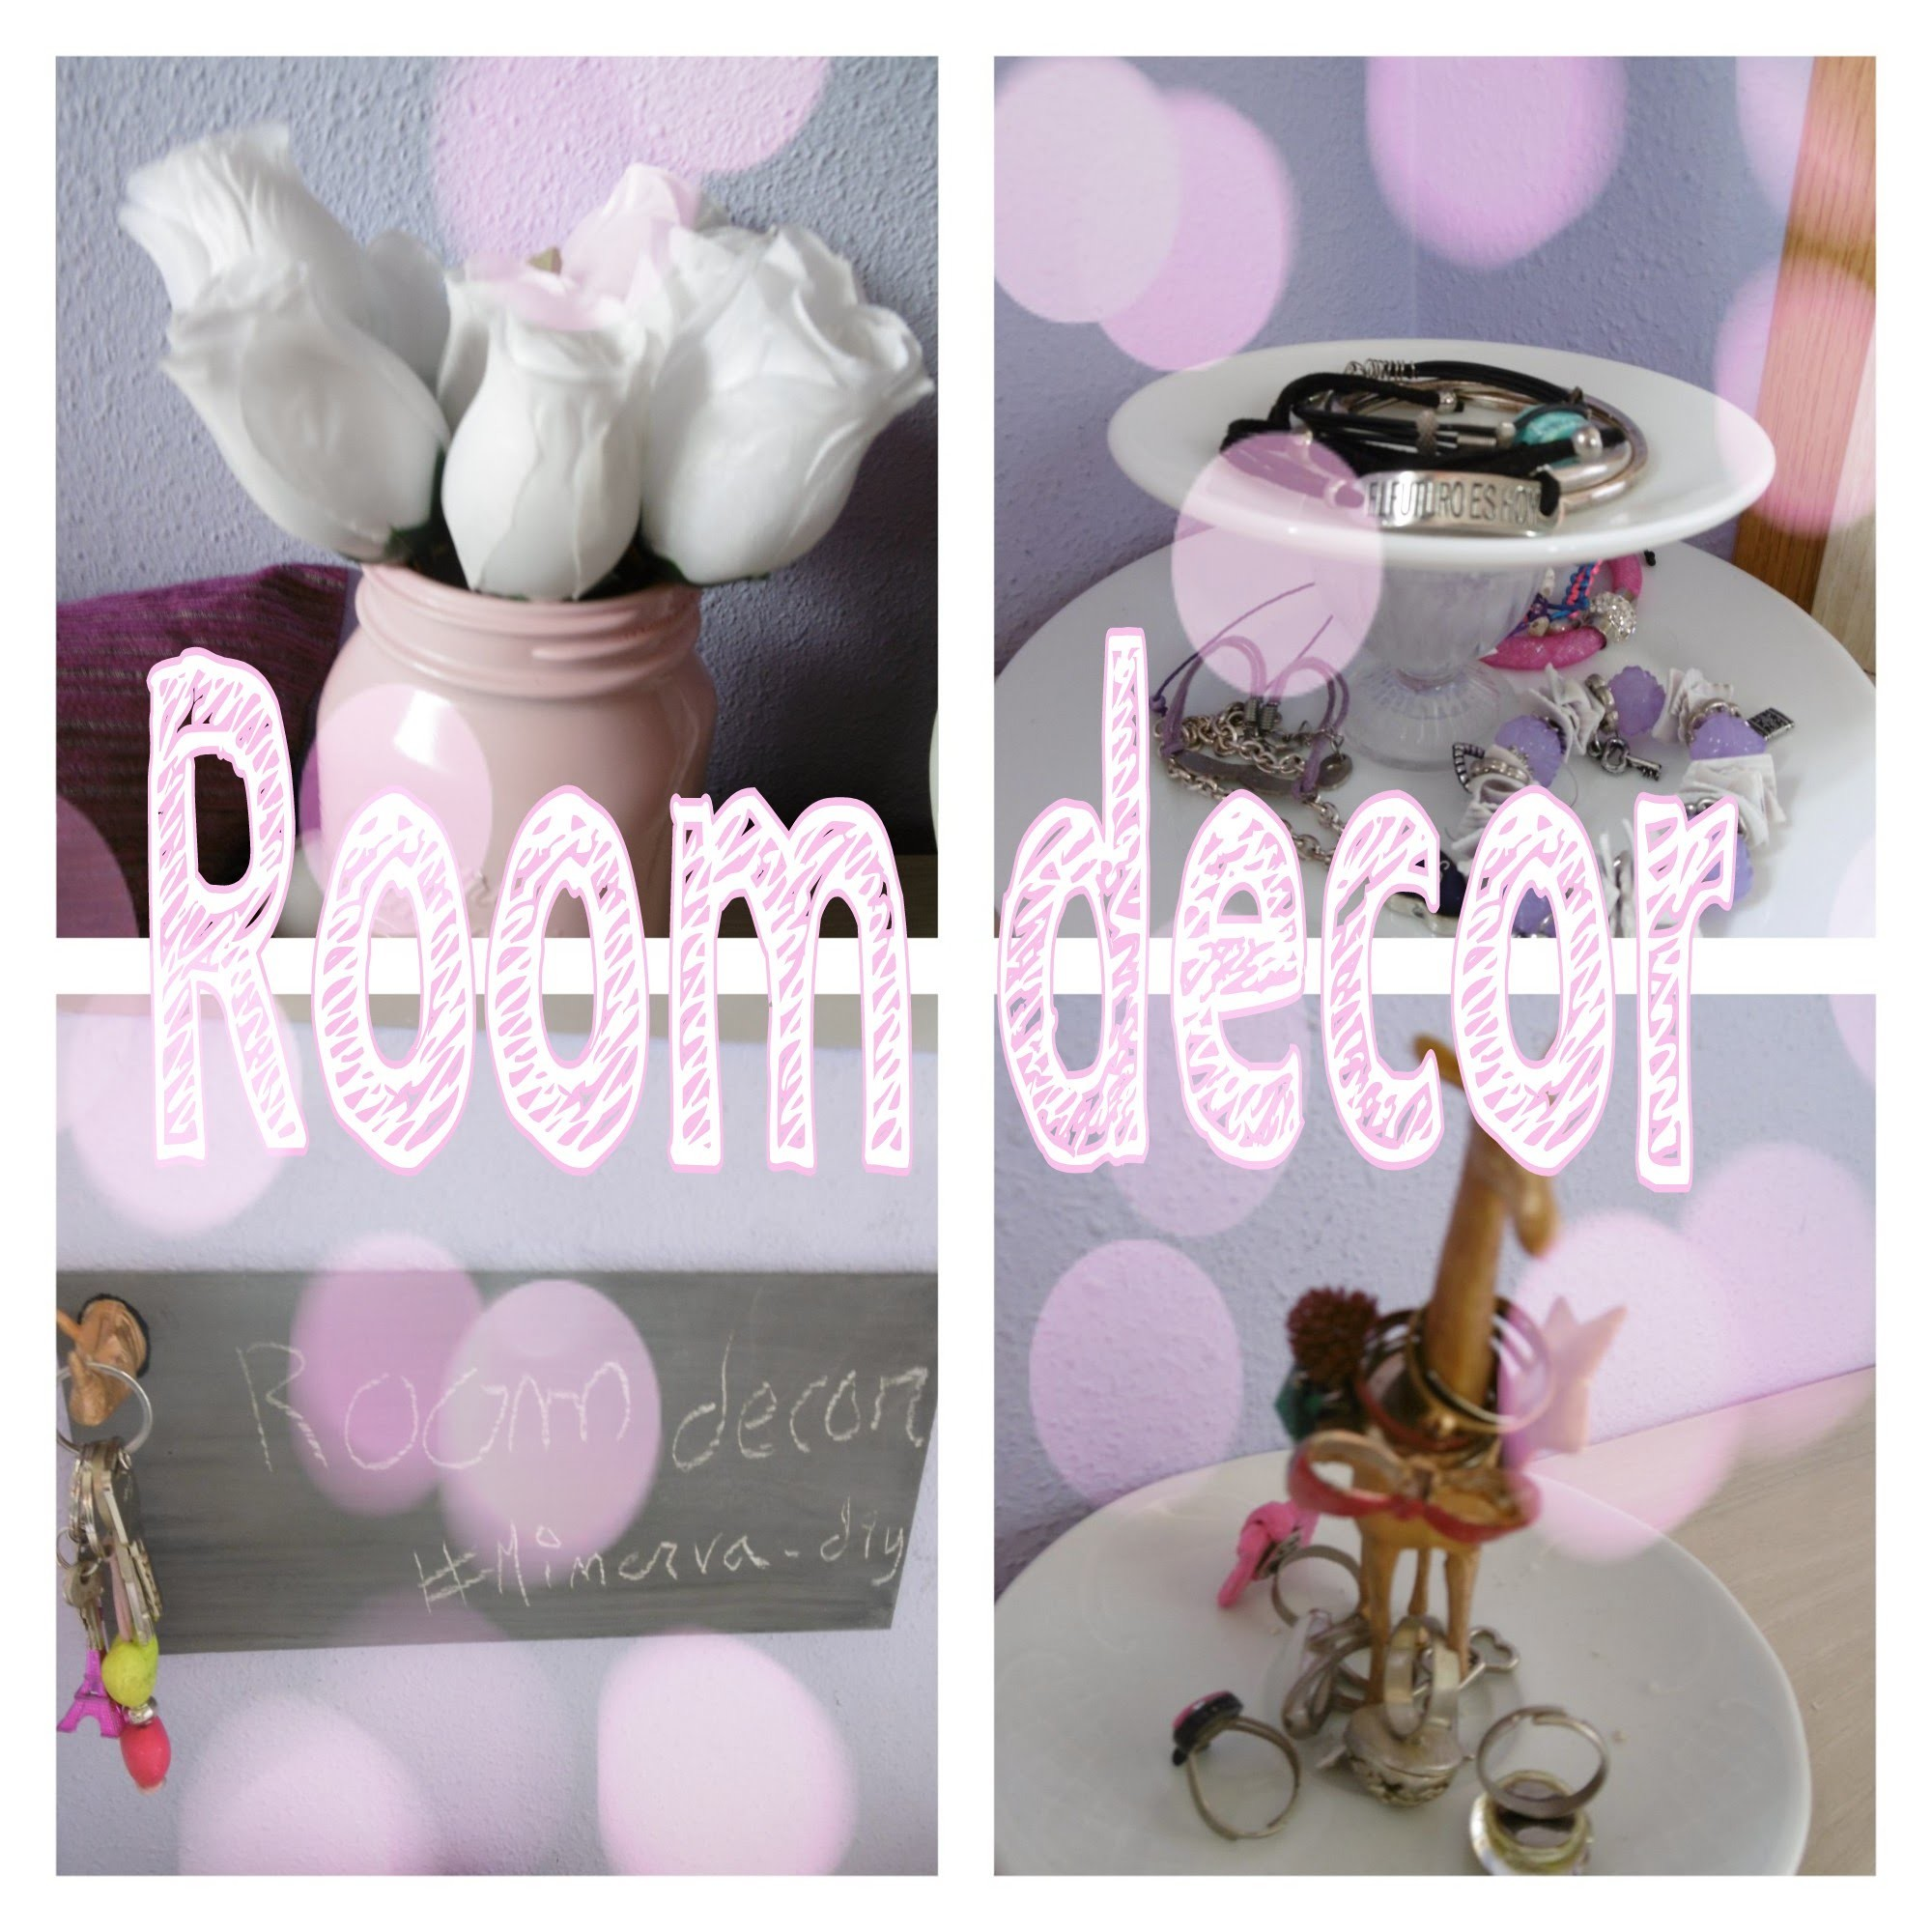 Room decor || Minerva diy